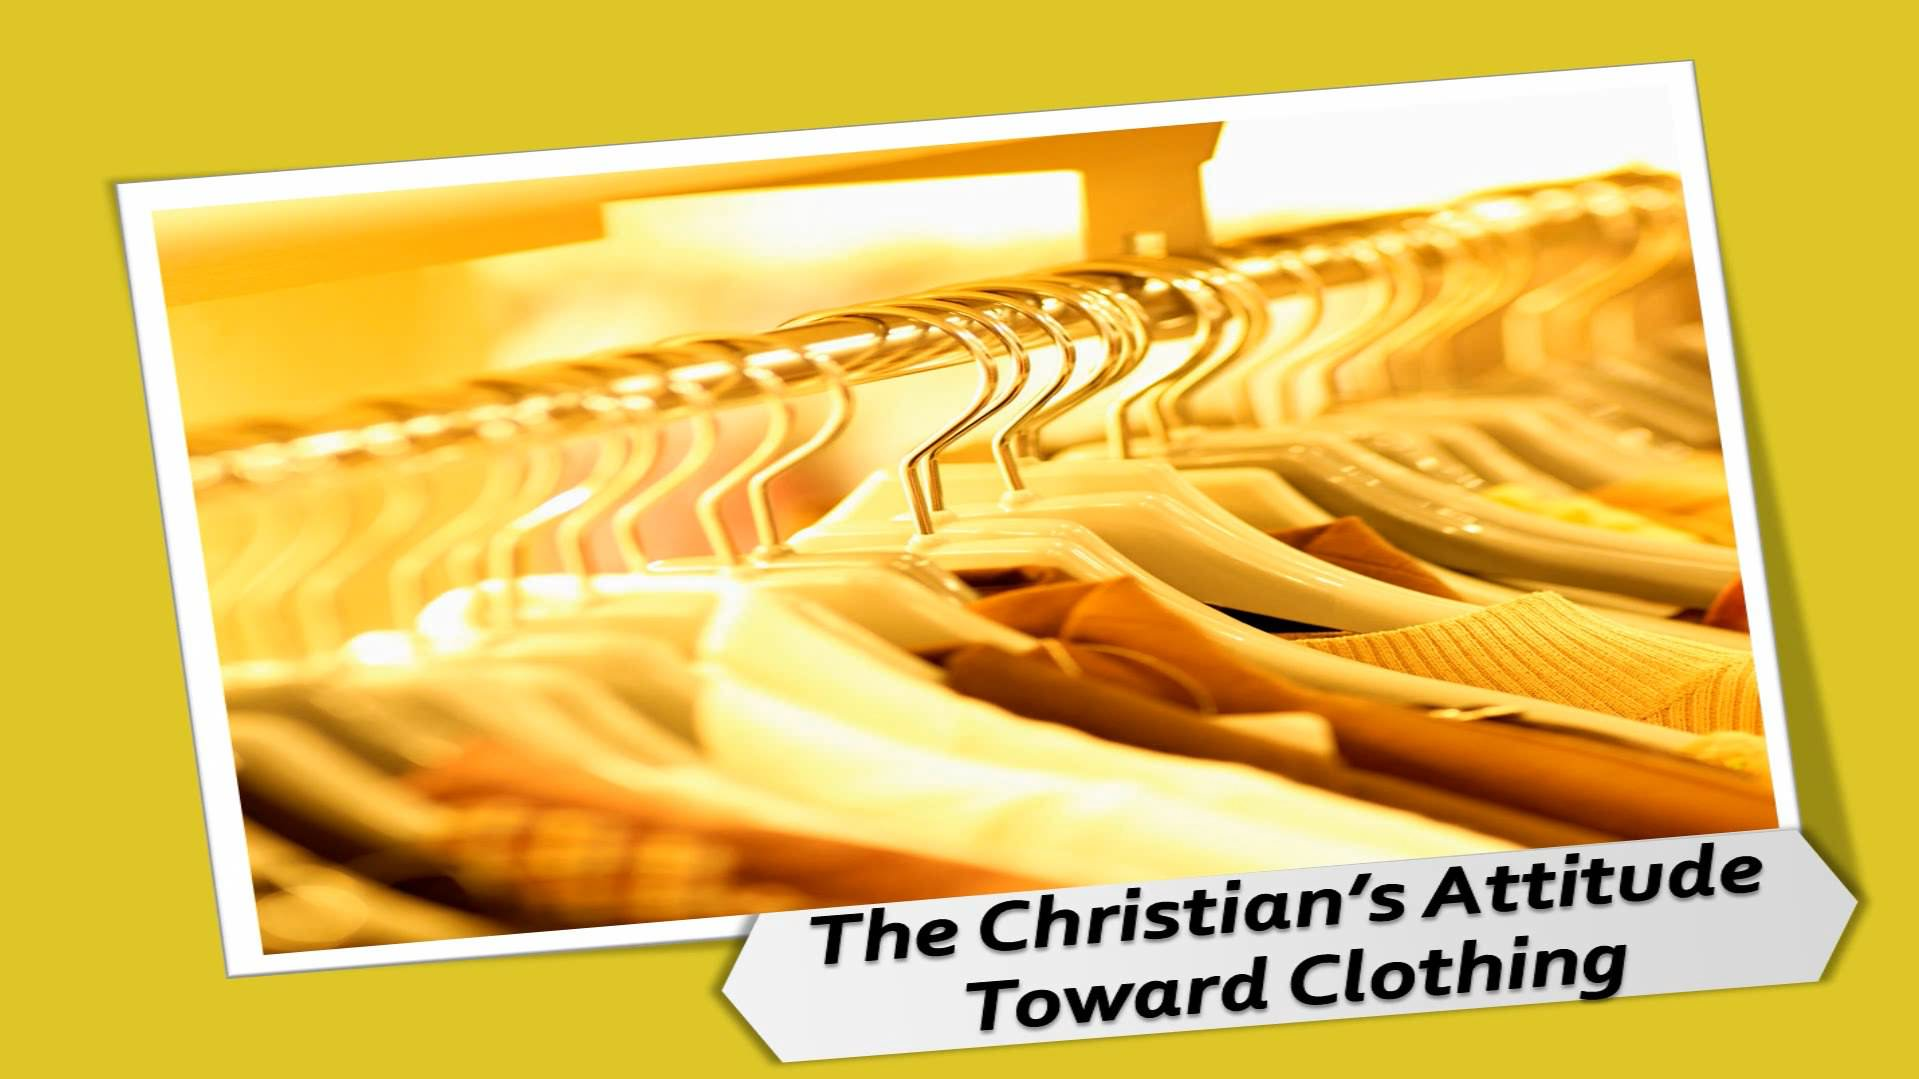 The Christian's Attitude Toward Clothing